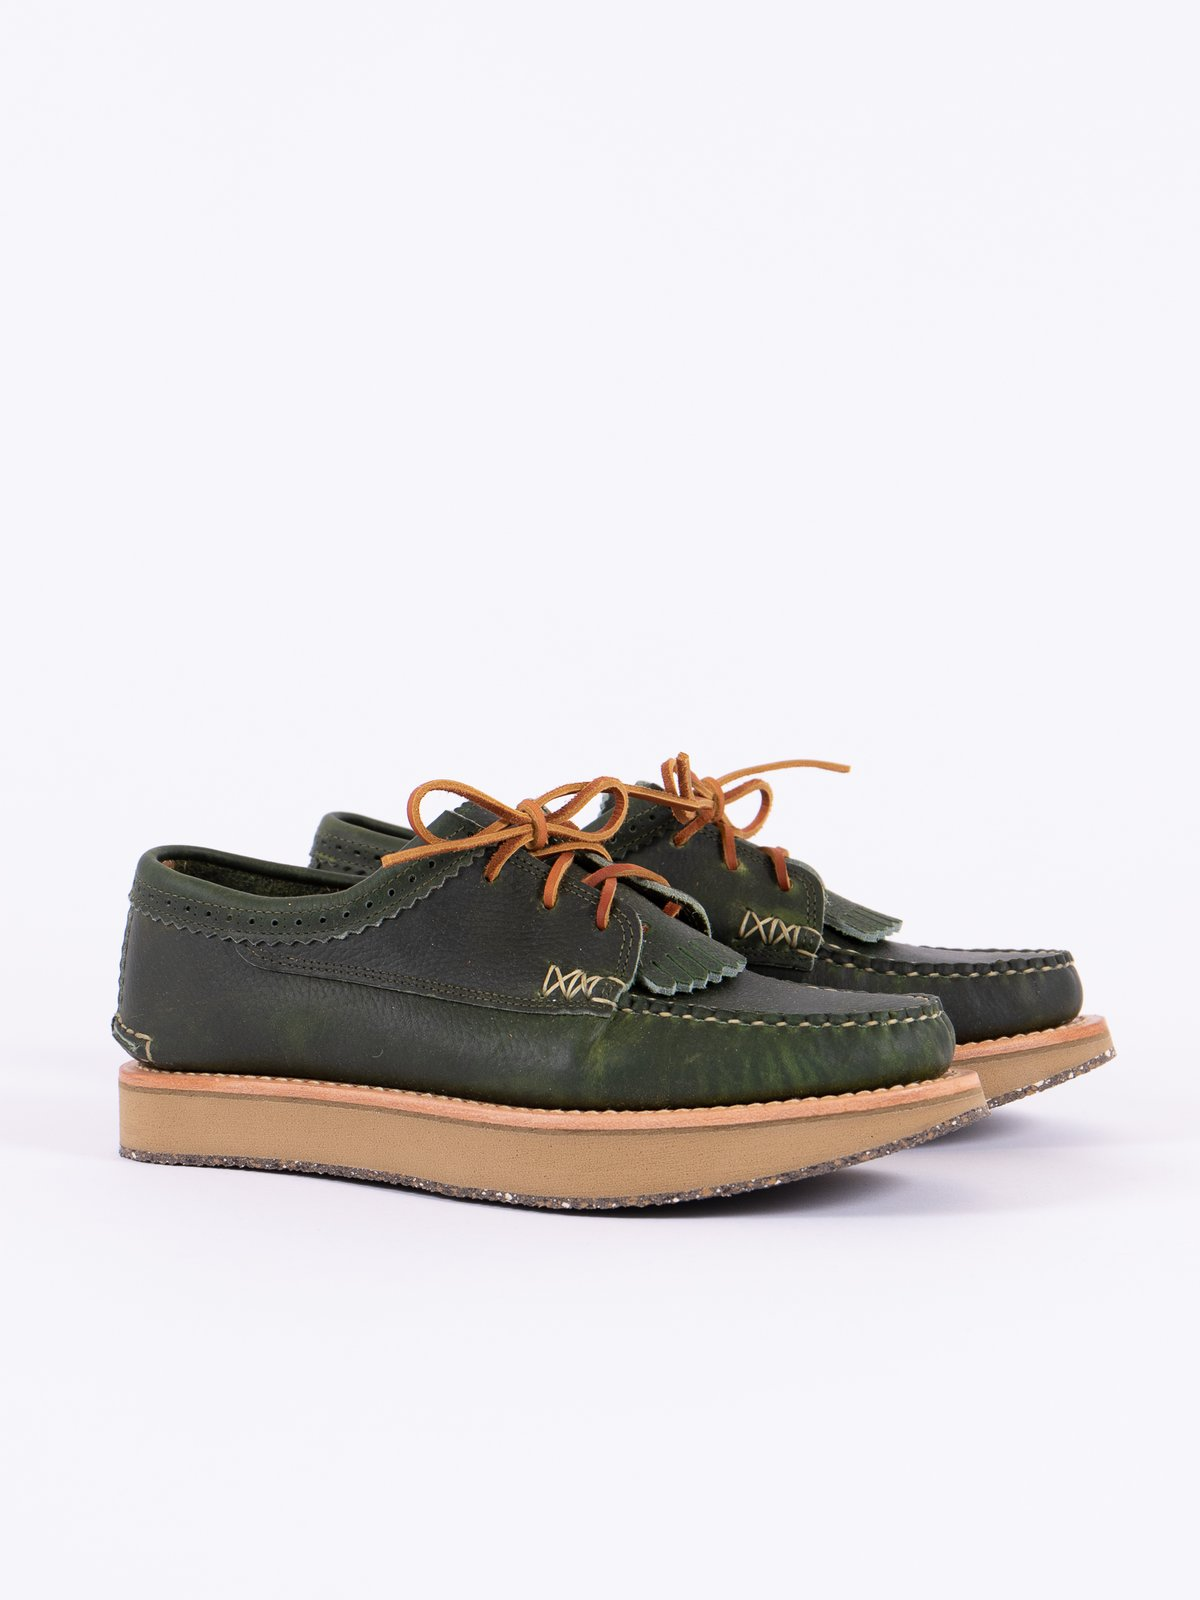 CP Persely Blucher Kiltie Rocker Exclusive - Image 1